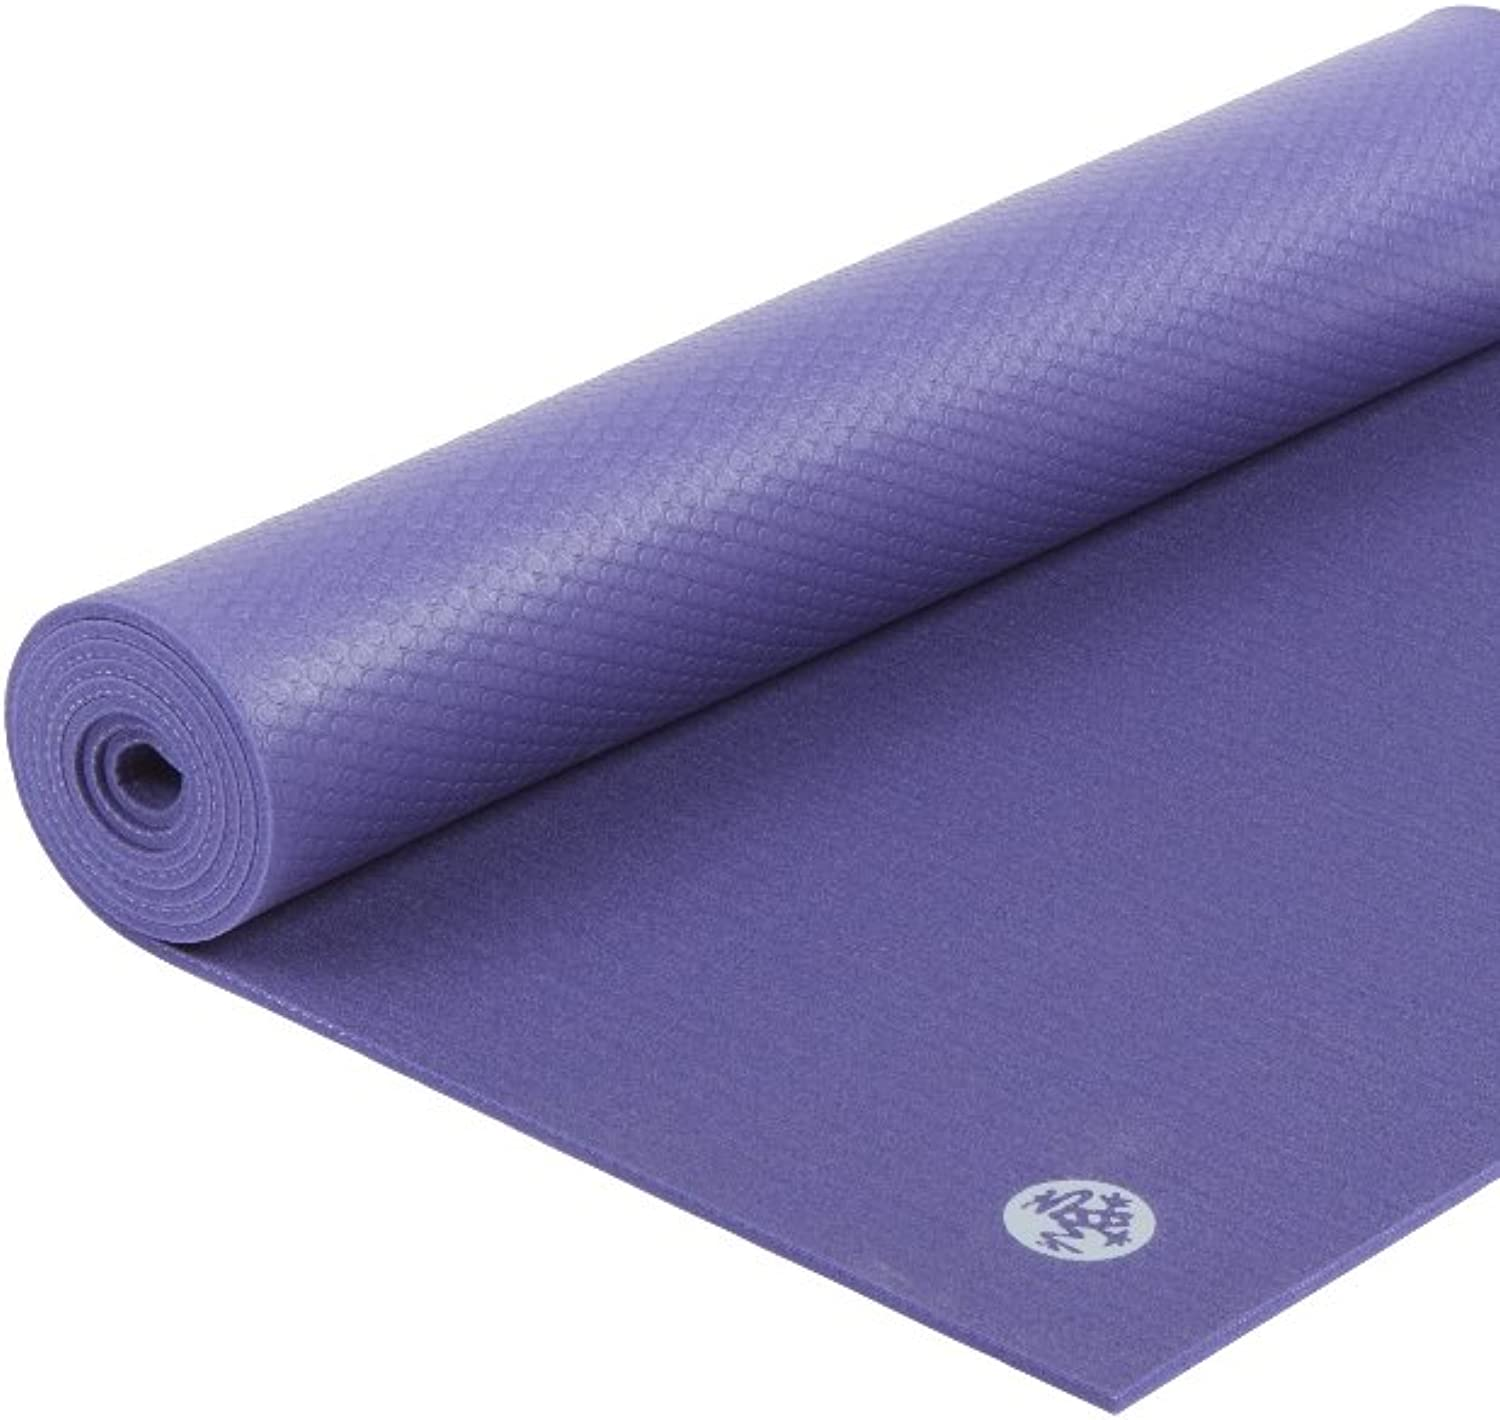 Manduka PROlite Yoga & Pilates Mat  Model lila Long  Colour lila 85  (61m x 200cm) 5mm thick